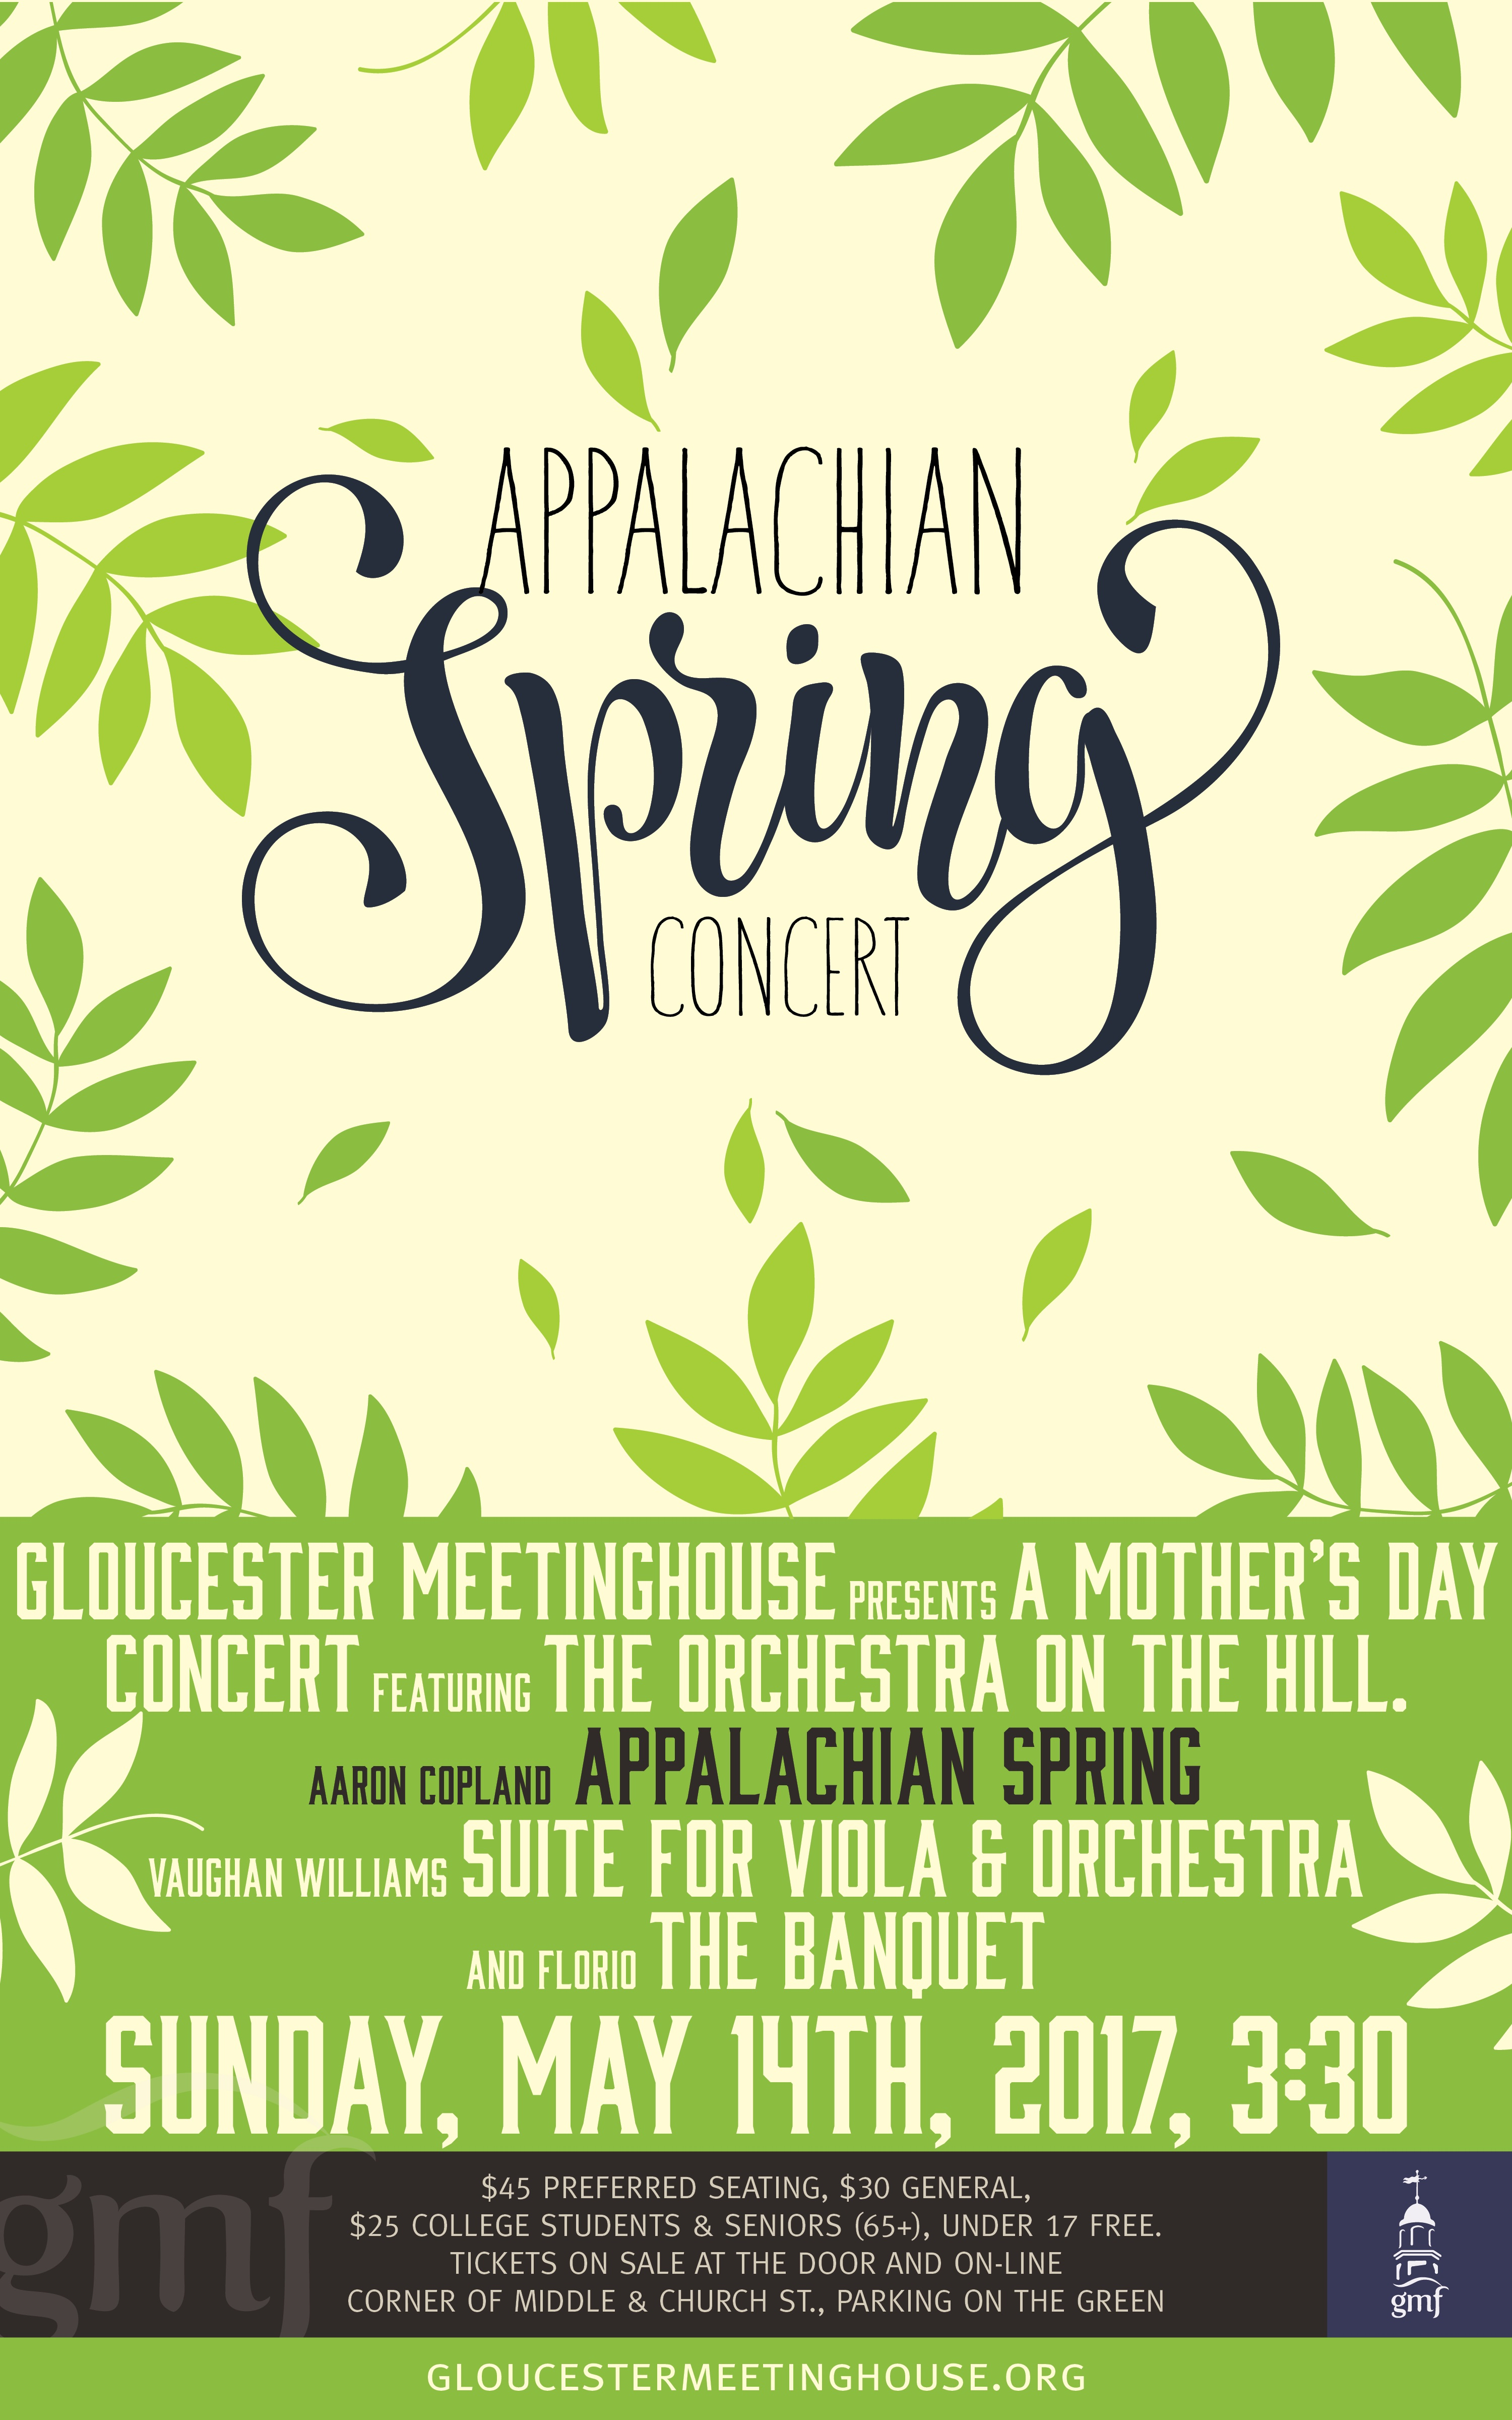 Gloucester Meetinghouse Mother's Day Concert to Featuring